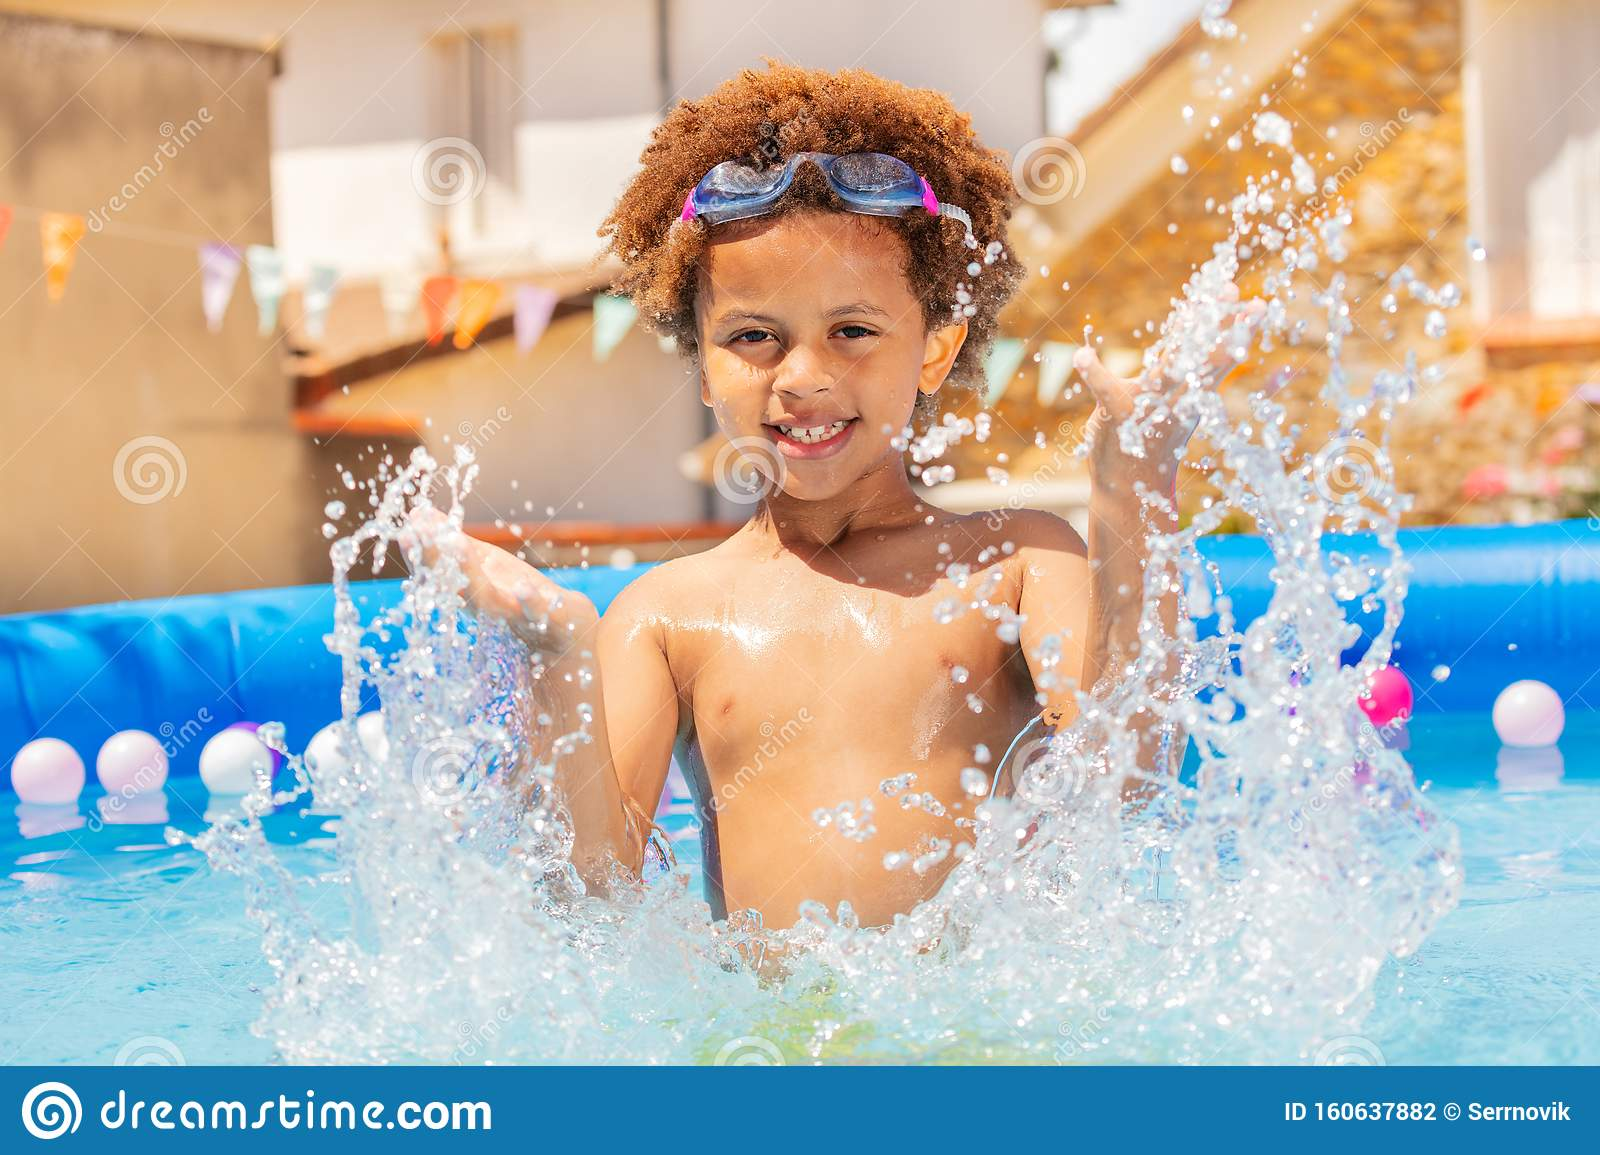 Cute Curly Boy Splash Water In Small Swimming Pool Stock Photo Image Of Childhood Smiling 160637882